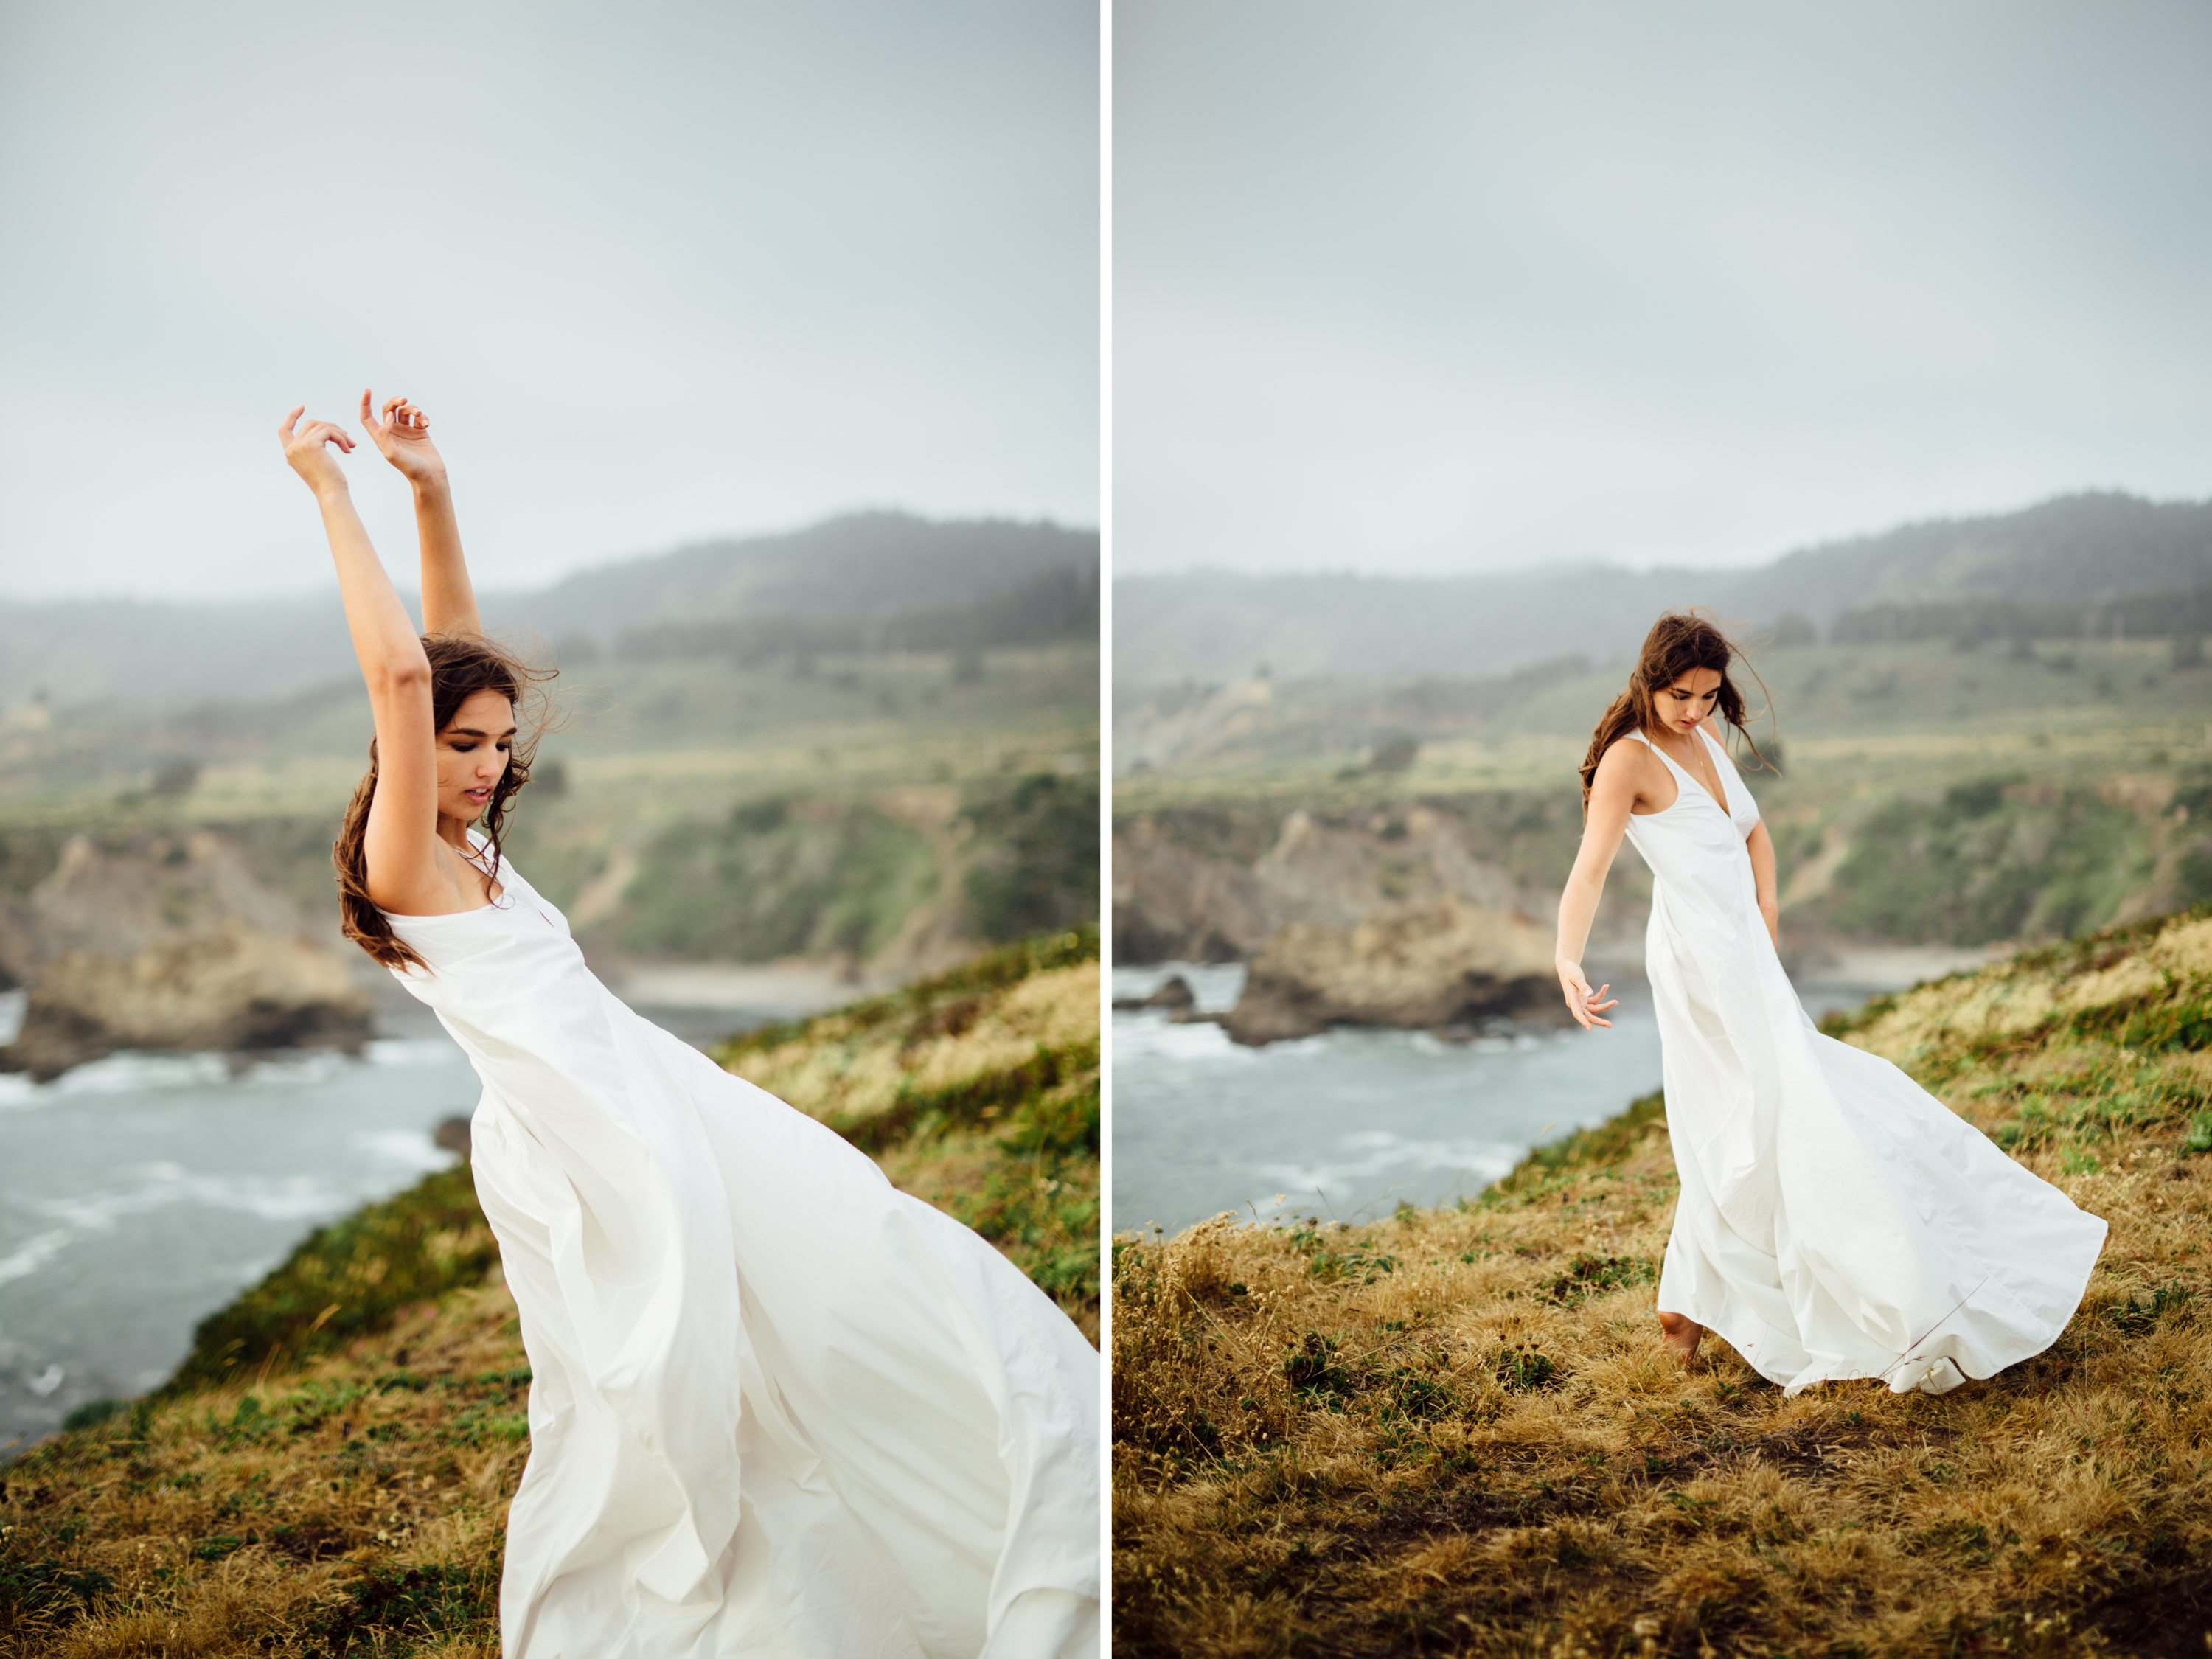 California-Wedding-Photography-by-Artur-Zaitsev-17